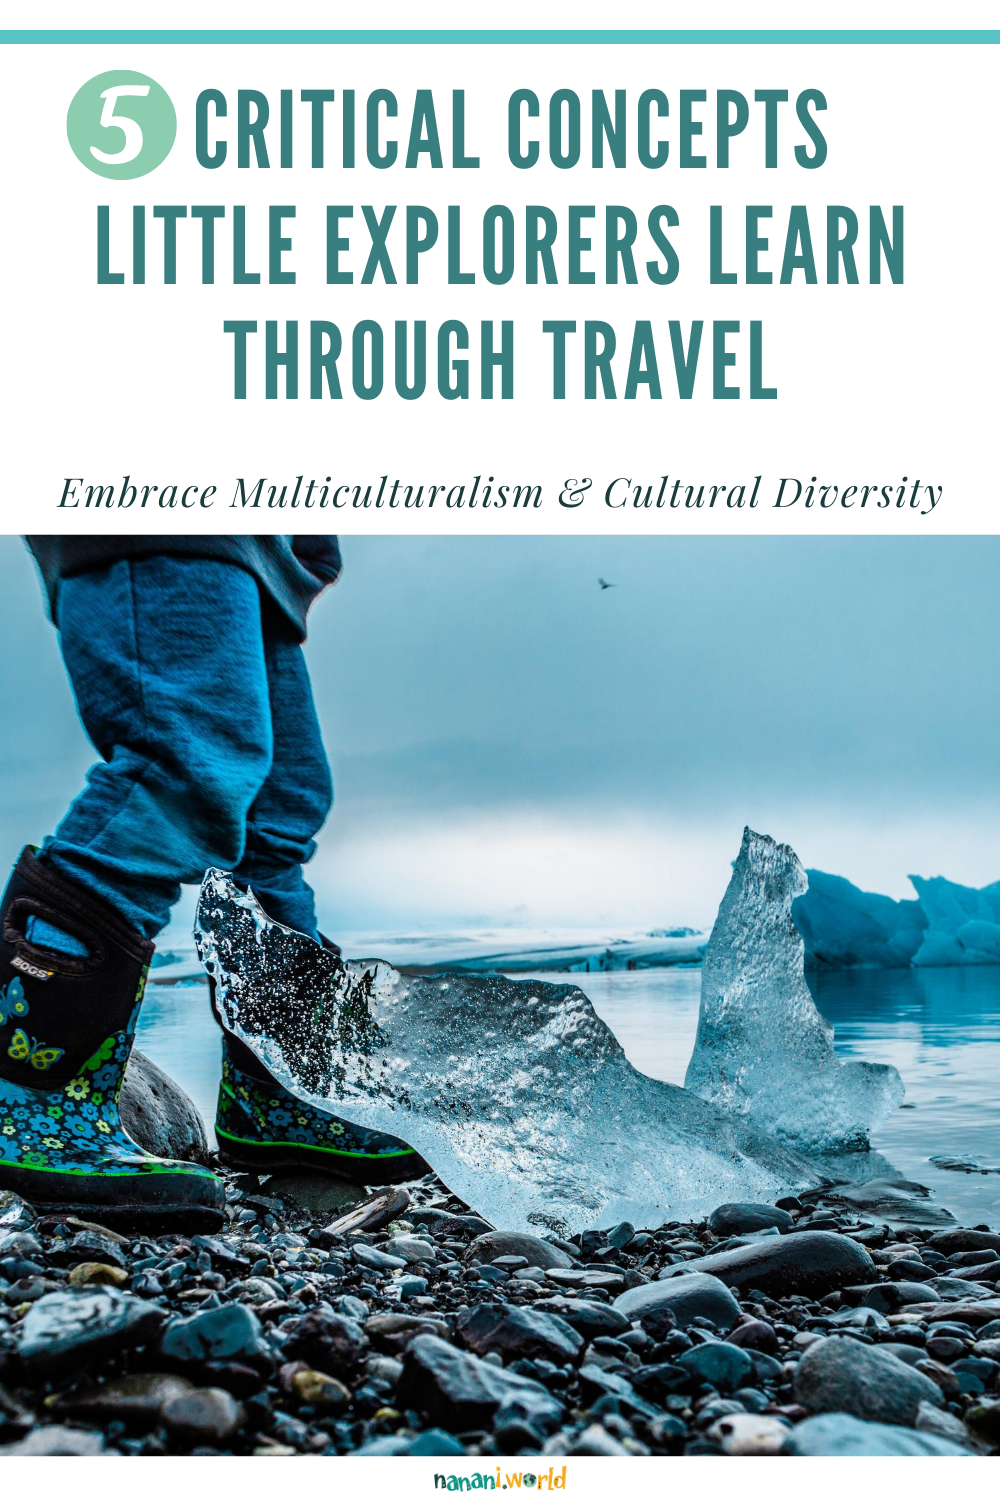 5 Critical Concepts Little Explorers Learn Through Travel